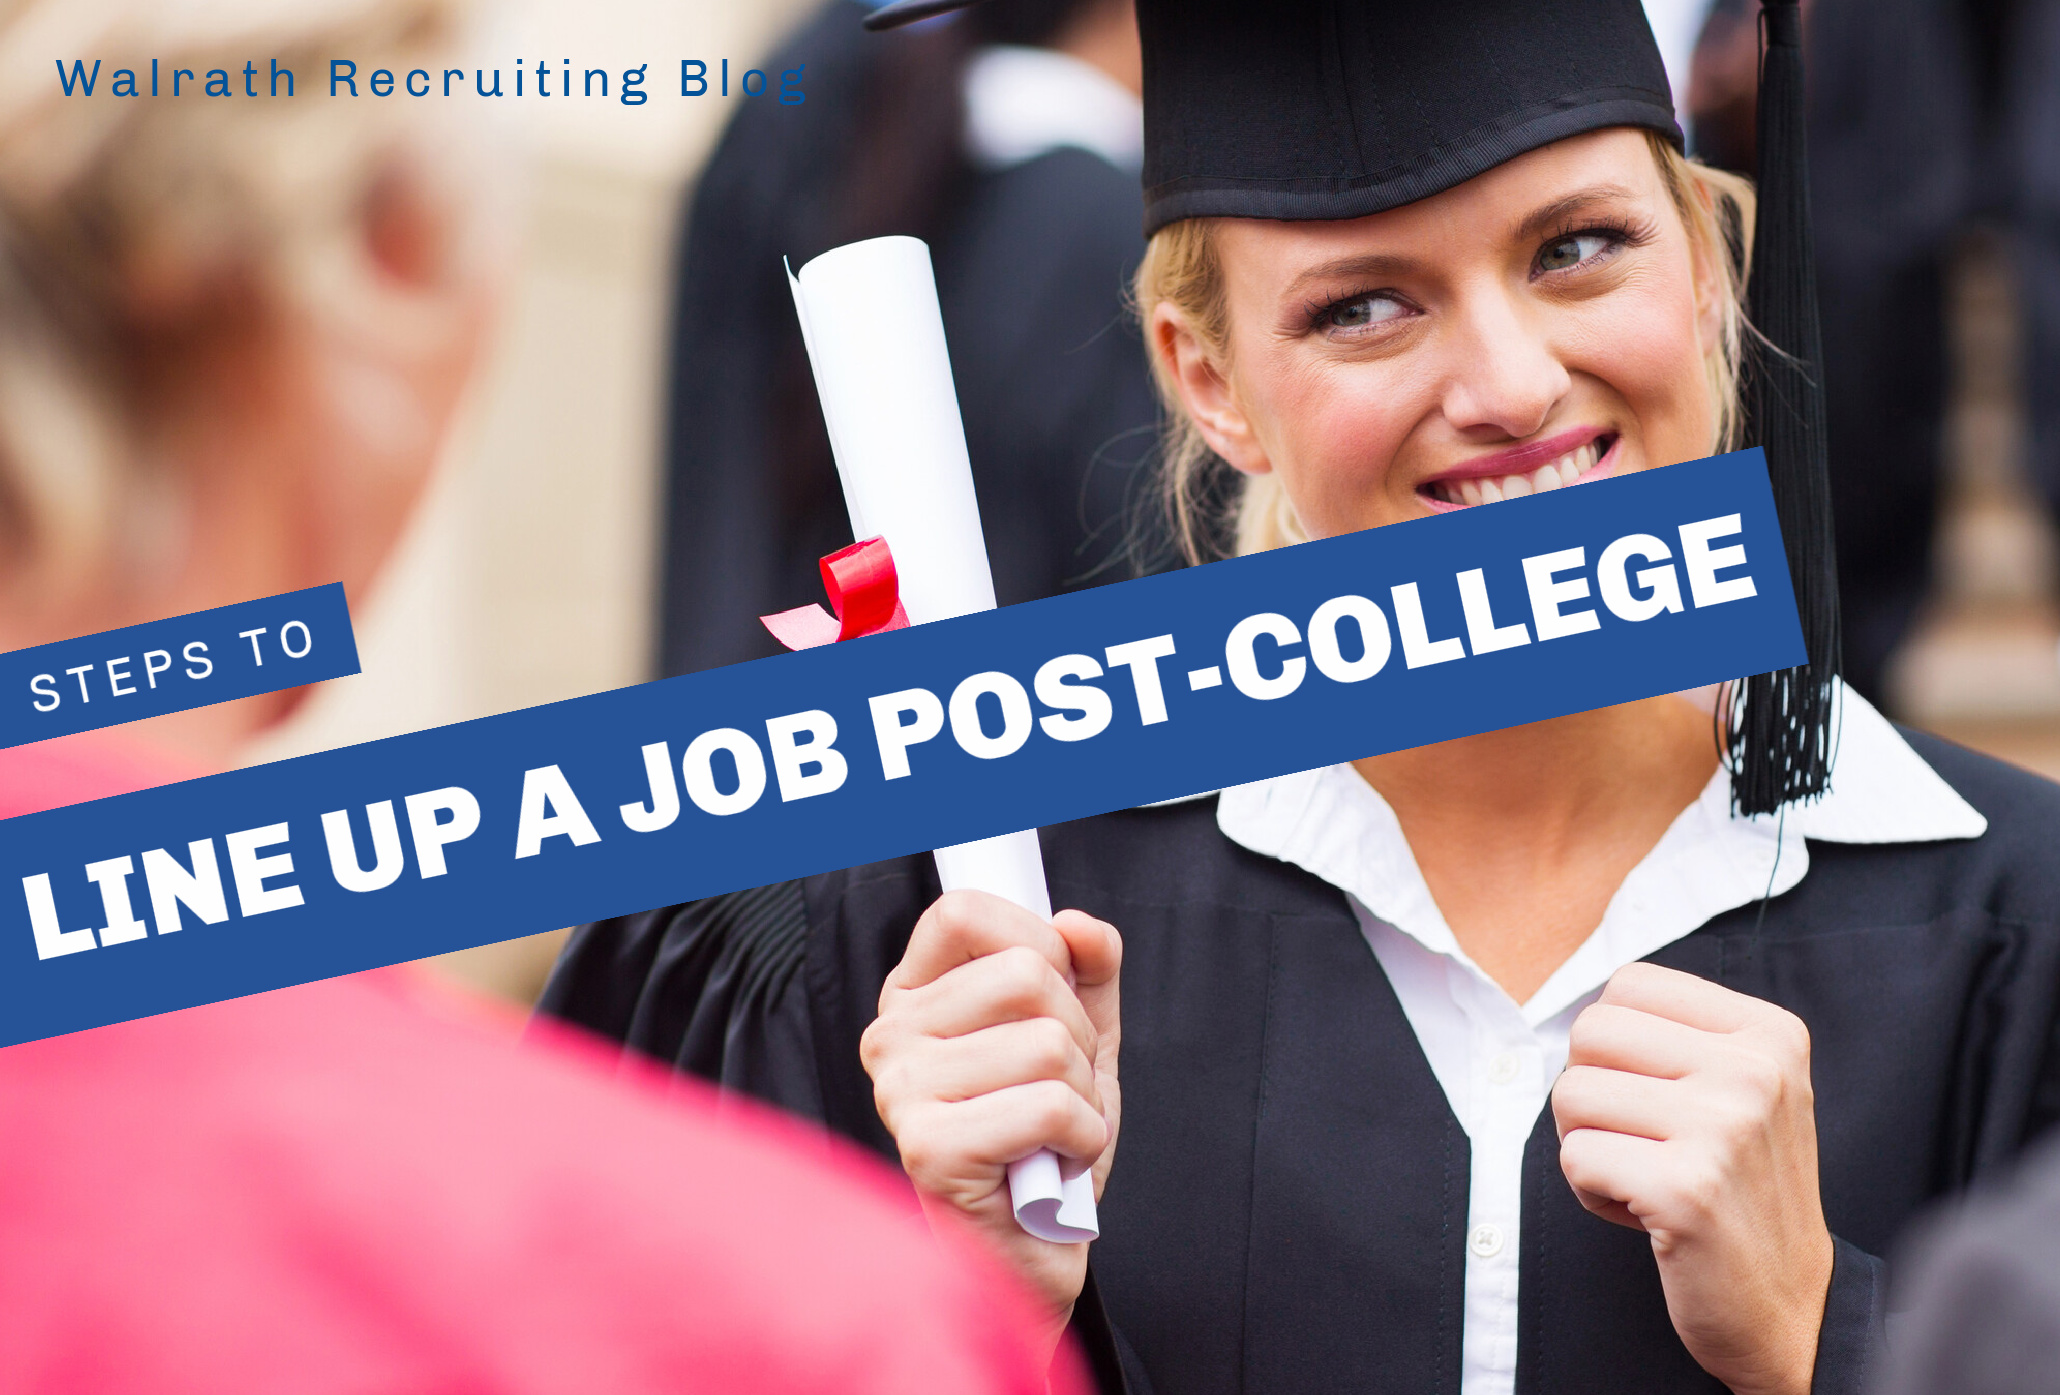 College grads ften struggle to find their first job. Check out these steps that will help you have a job lined up immediately!